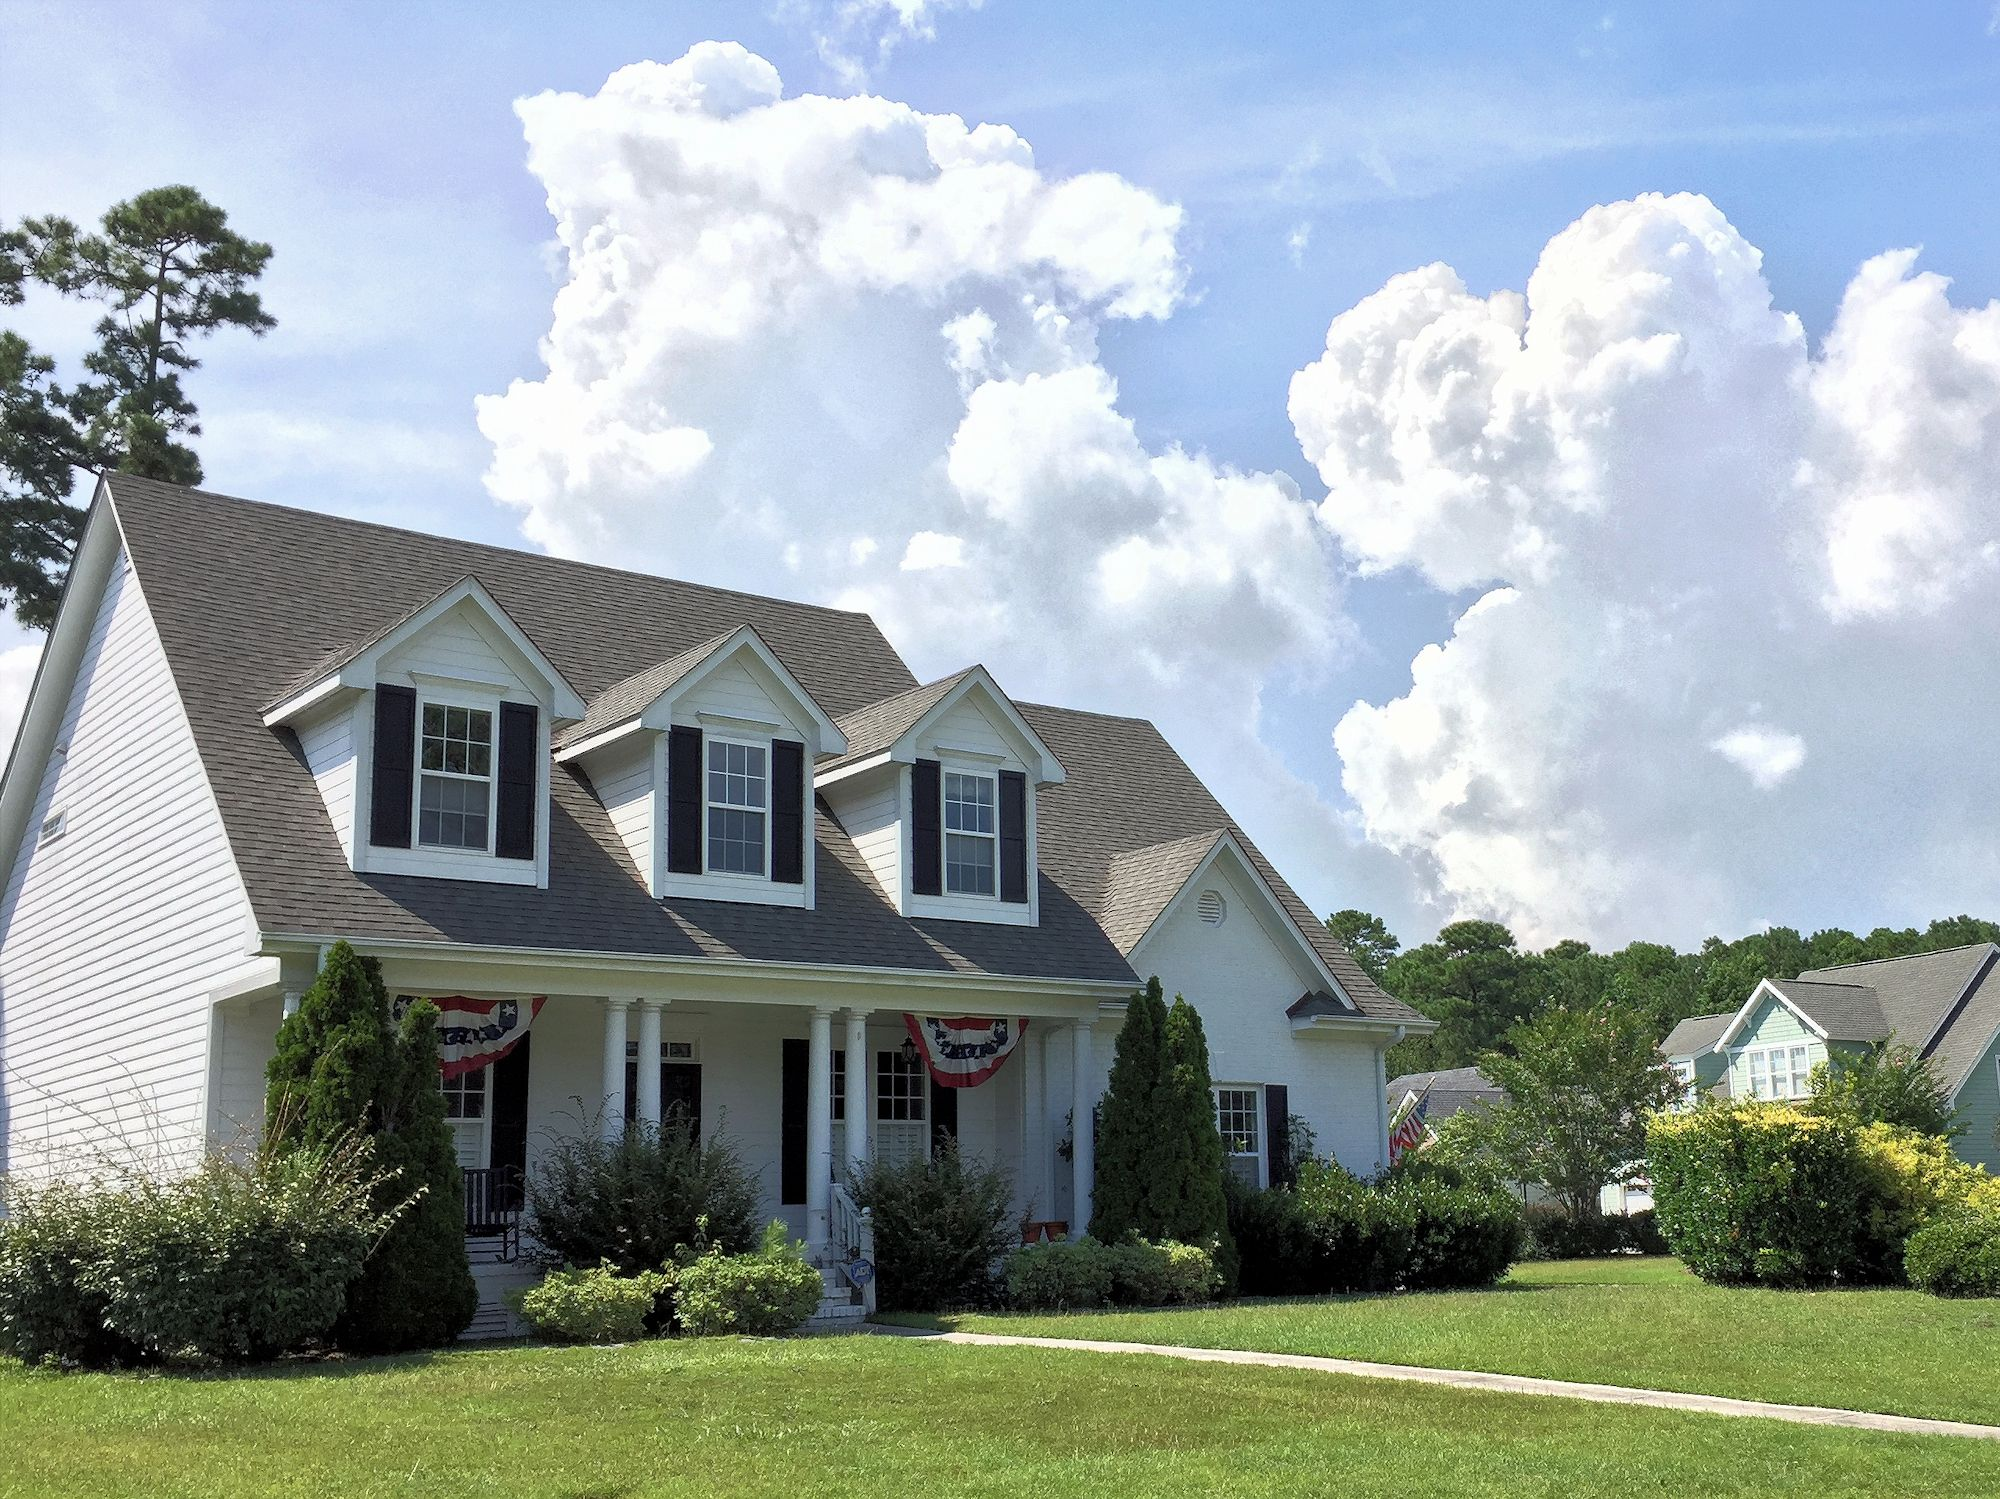 Crosswinds homes for sale in wilmington nc the cameron team for Crosswinds homes